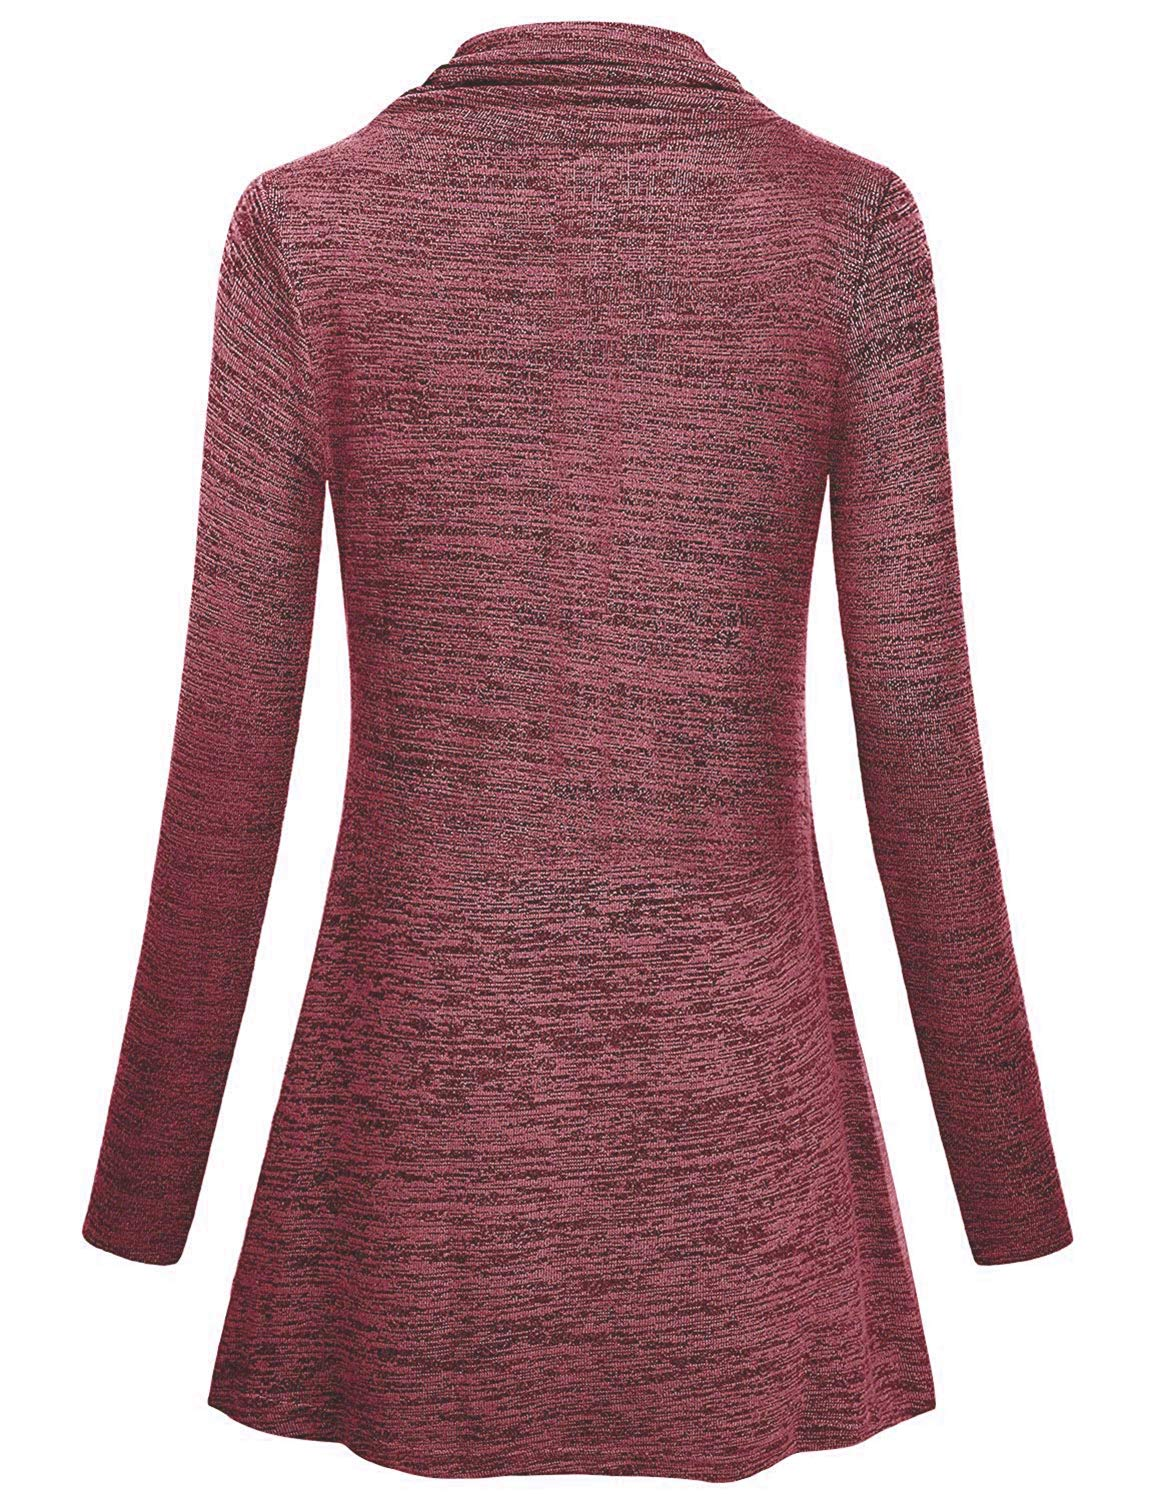 DIOLOCA Women Cowl Neck Tops Button Long Sleeve Plus Size Tunic Pullover Sweatshirt Casual Flowy Blouse Wine Red